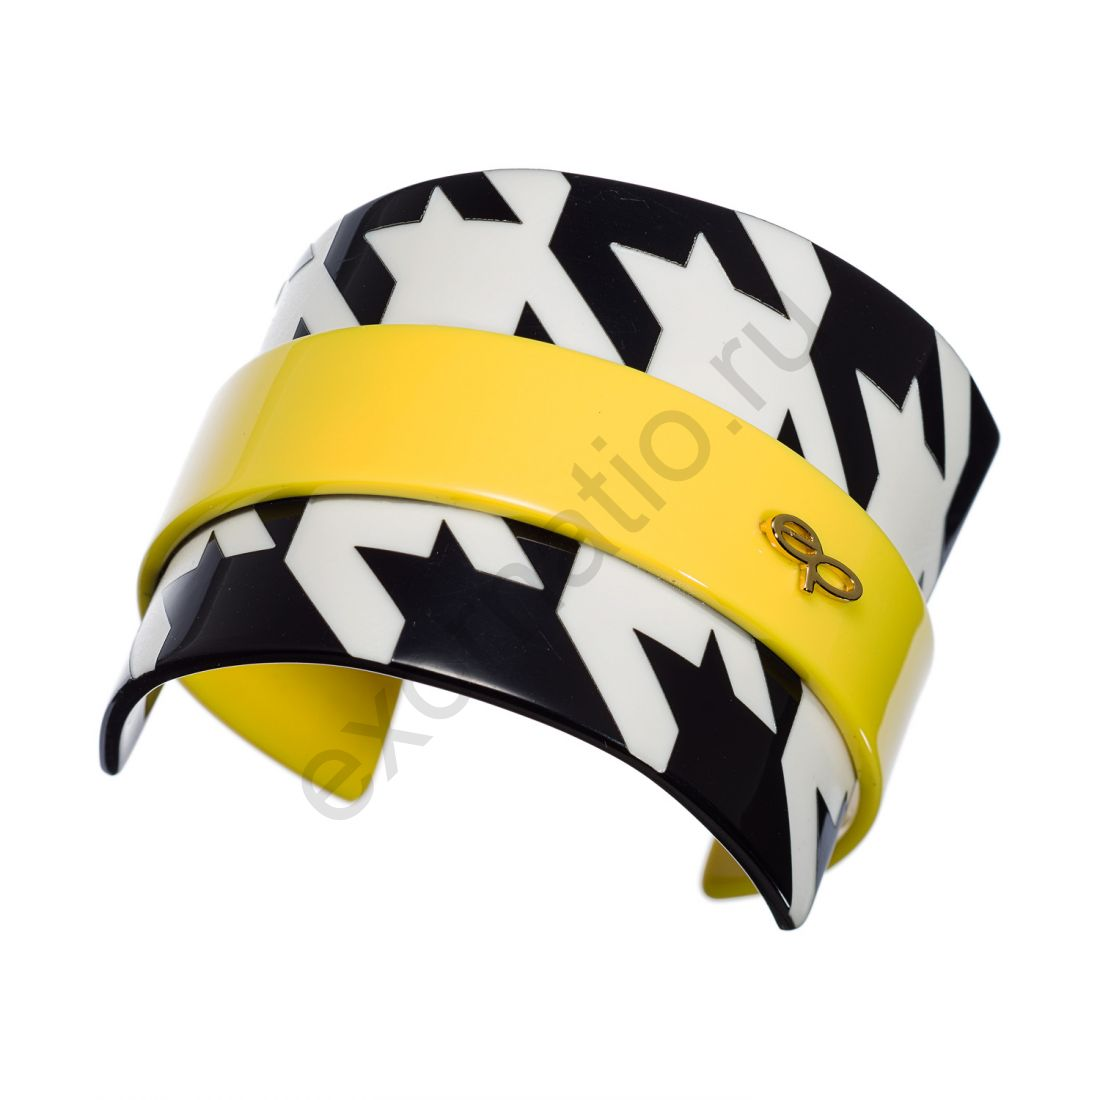 Браслет Evita Peroni 2945709. Коллекция Houndstooth Yellow